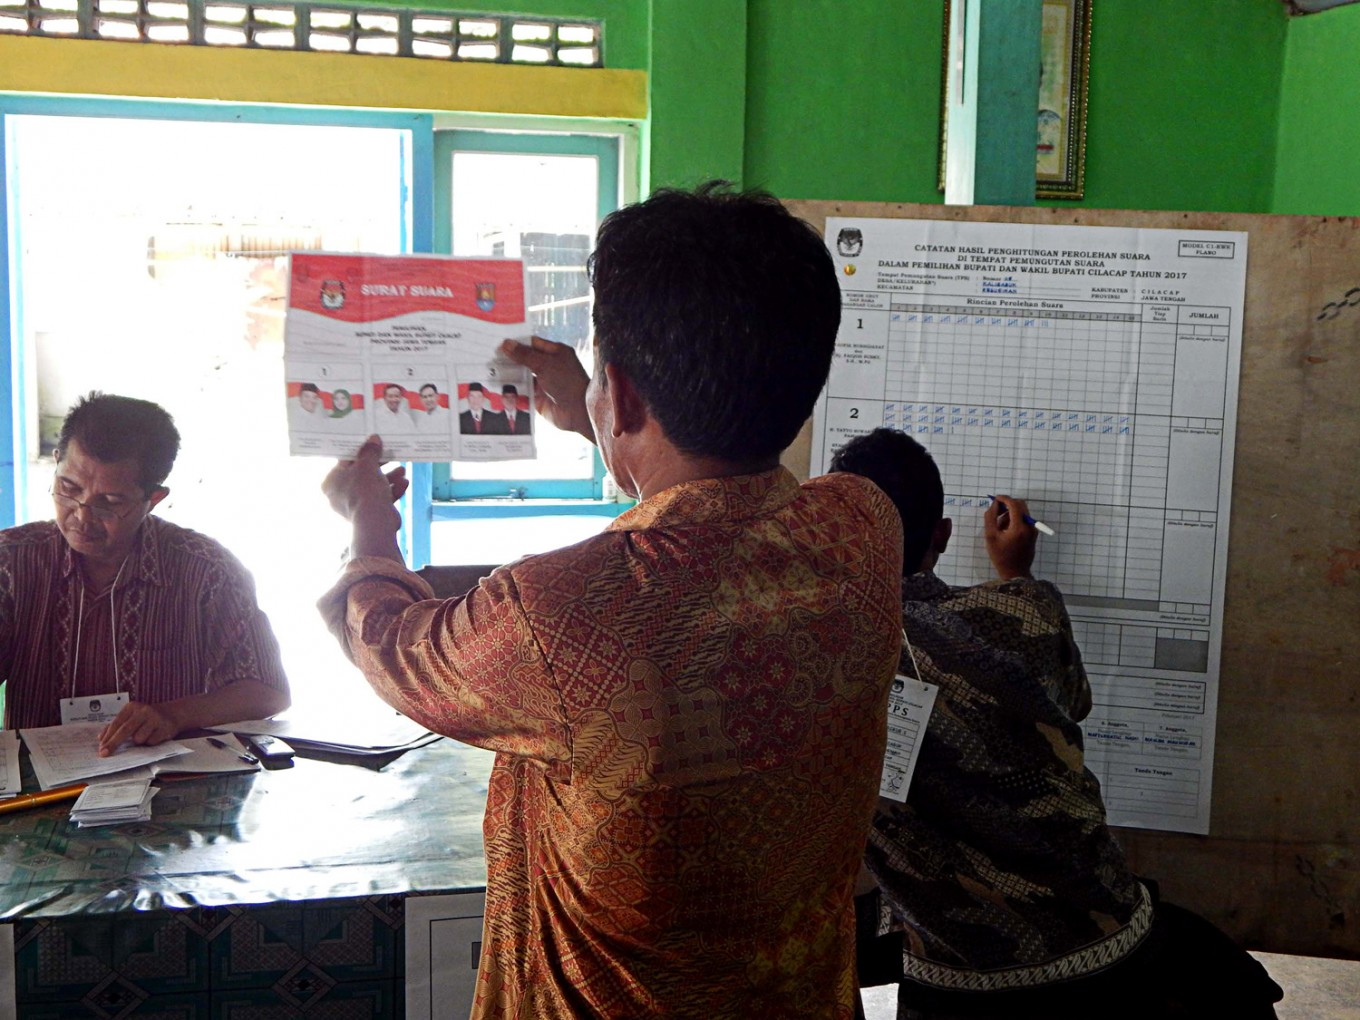 Visiting Indonesian lawmakers find Germany no longer implementing e-voting